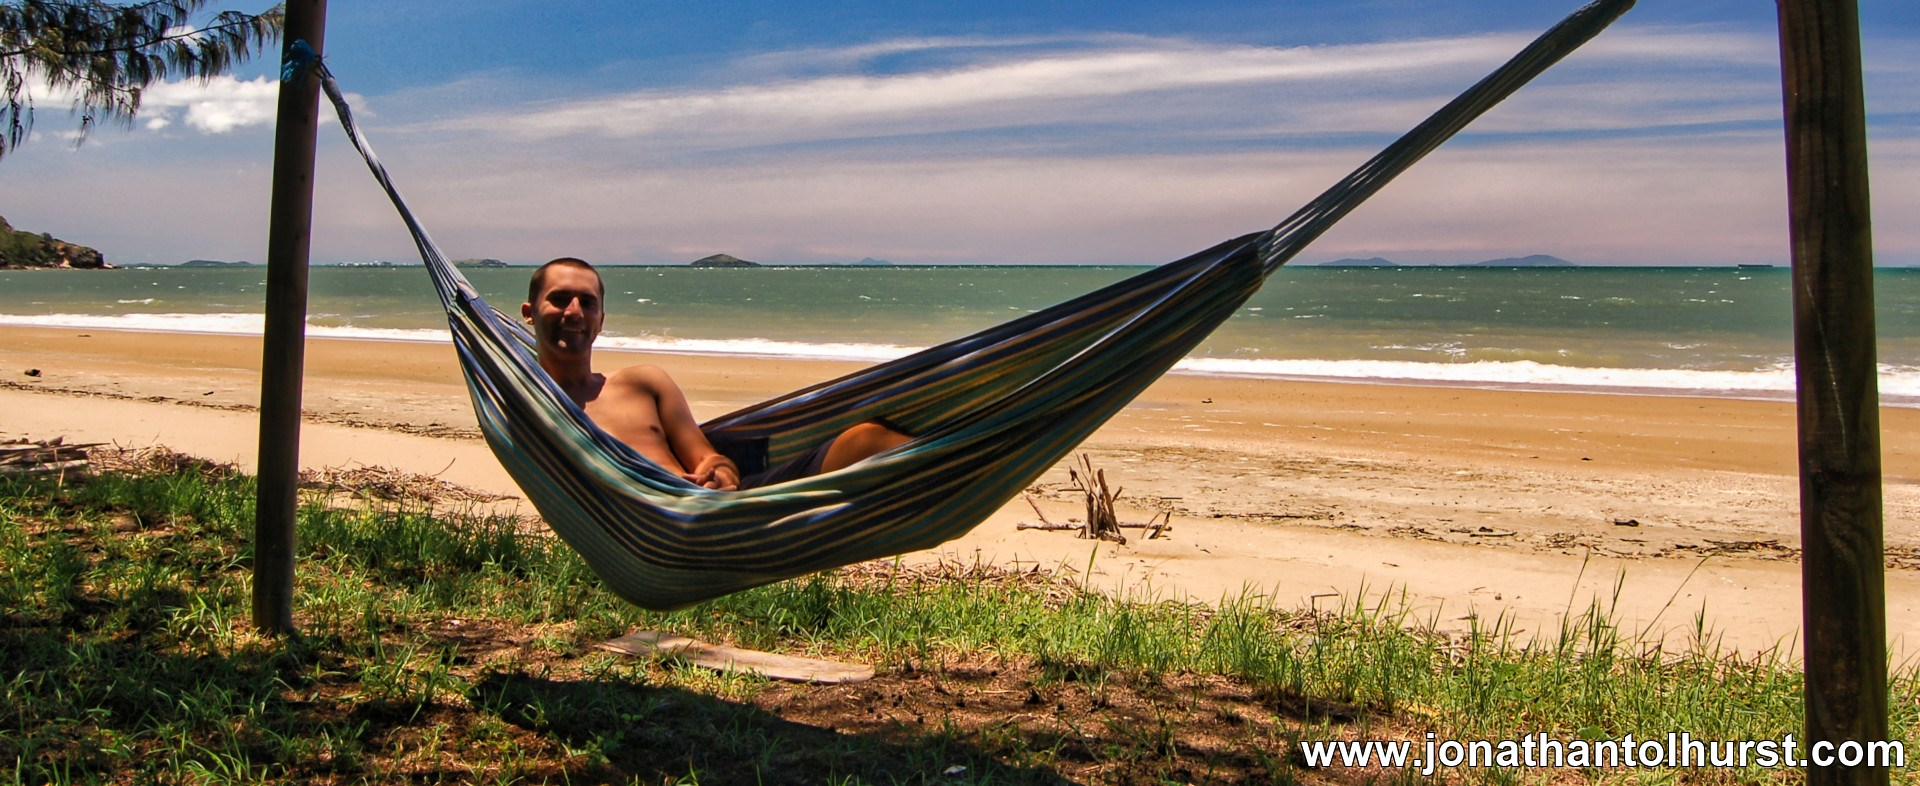 Beach Hammock Queensland Australia Jonathan Tolhurst Photography